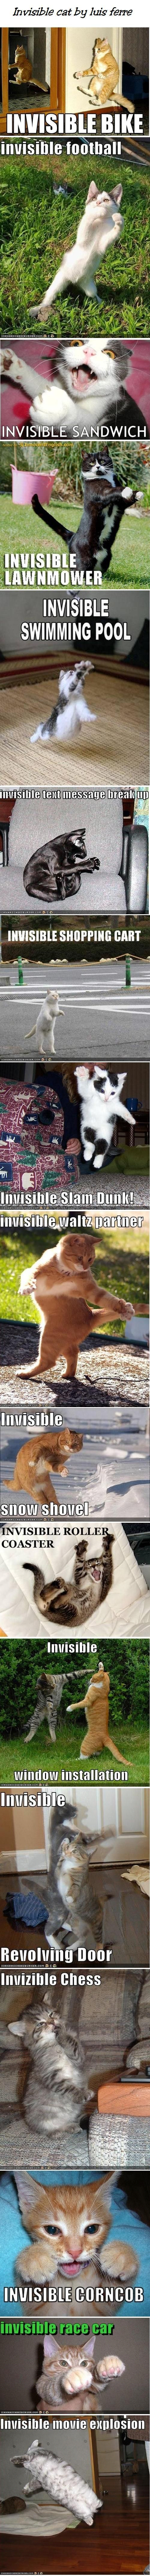 Invisible! haha. Love funny cat stuff. (btw, invisible snow shovel looks more like invisible skis)